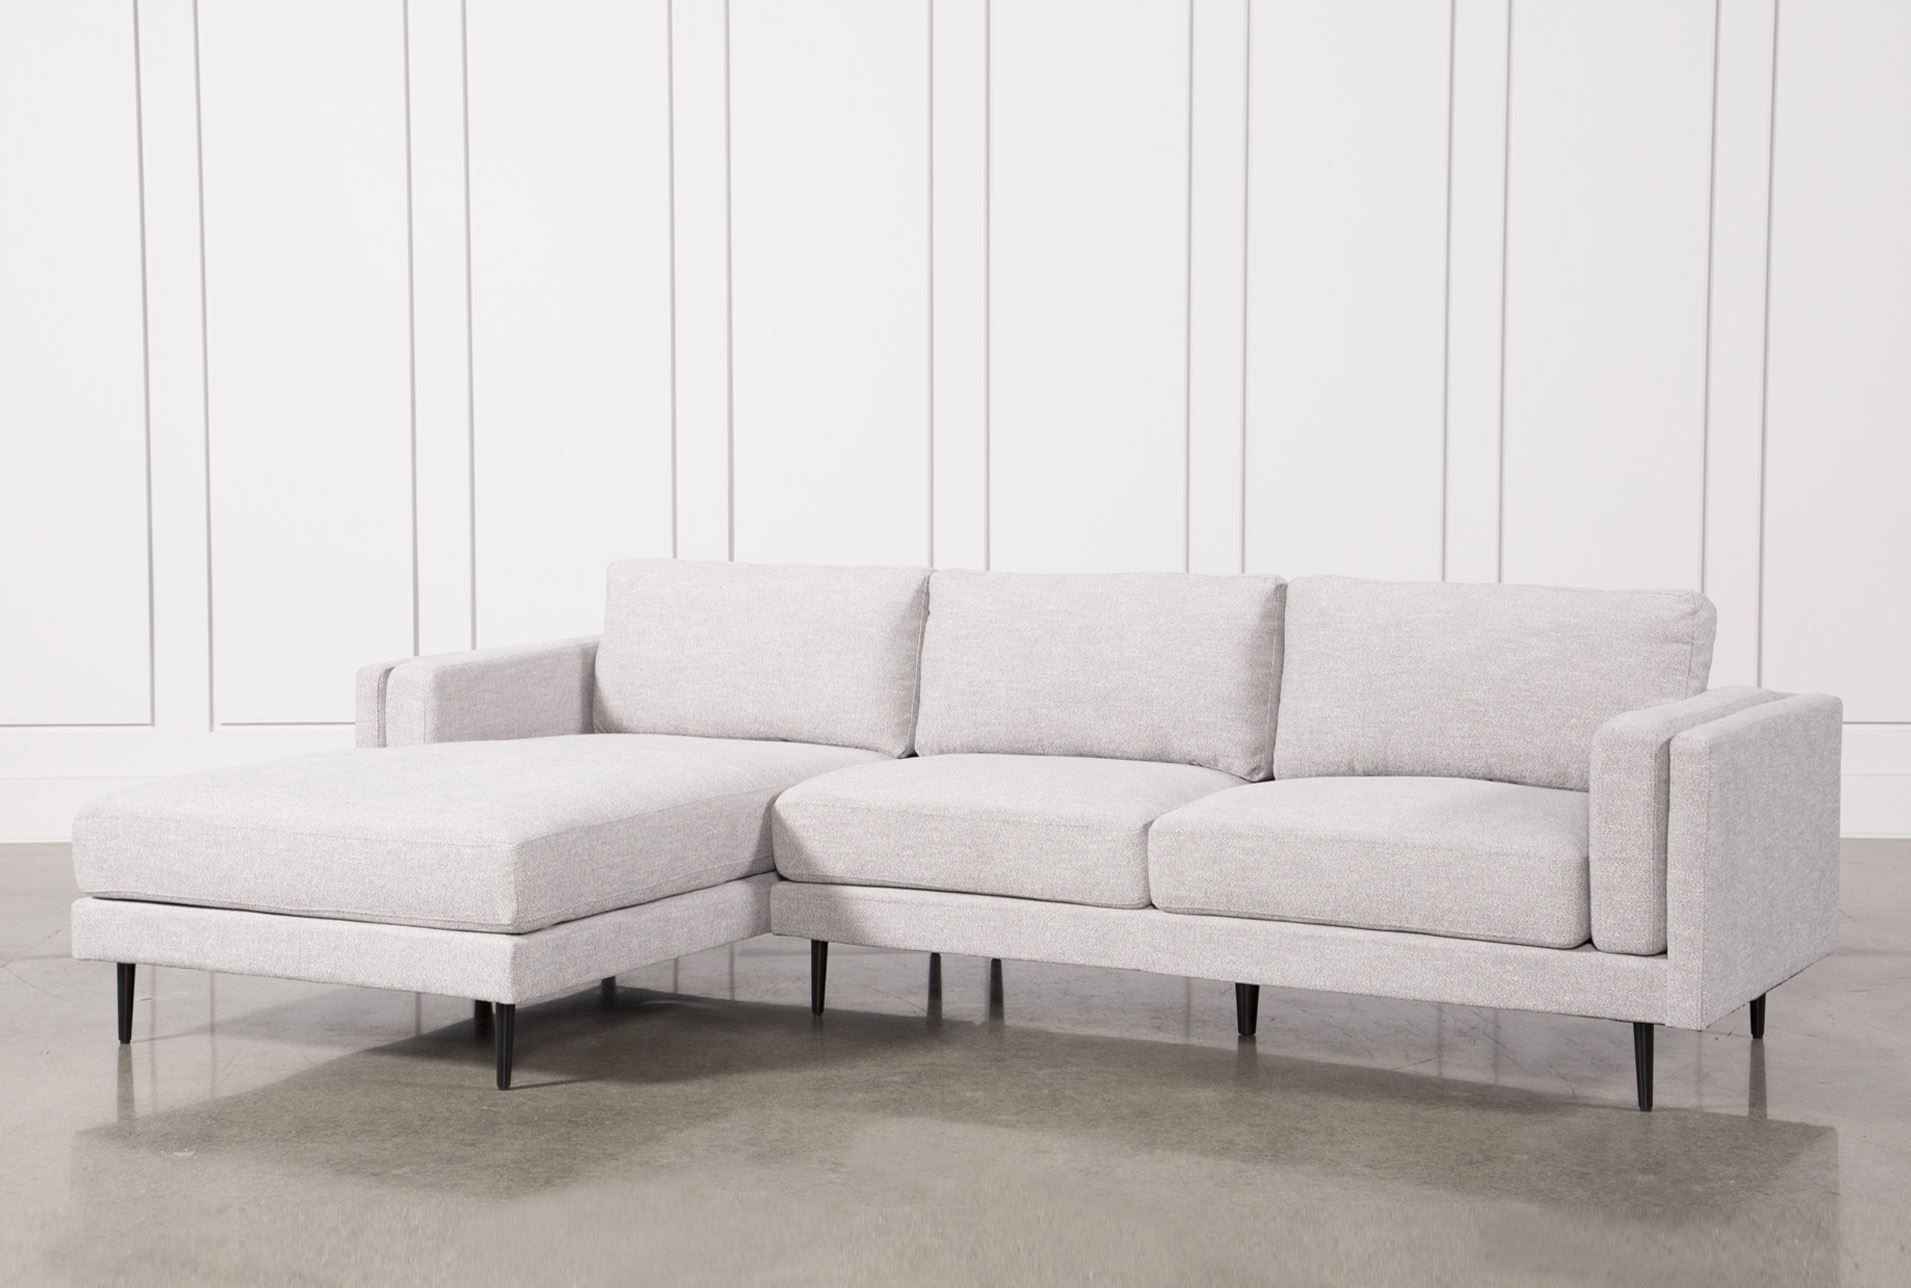 Aquarius Light Grey 2 Piece Sectional W/laf Chaise | Furniture With Lucy Grey 2 Piece Sectionals With Laf Chaise (View 8 of 25)